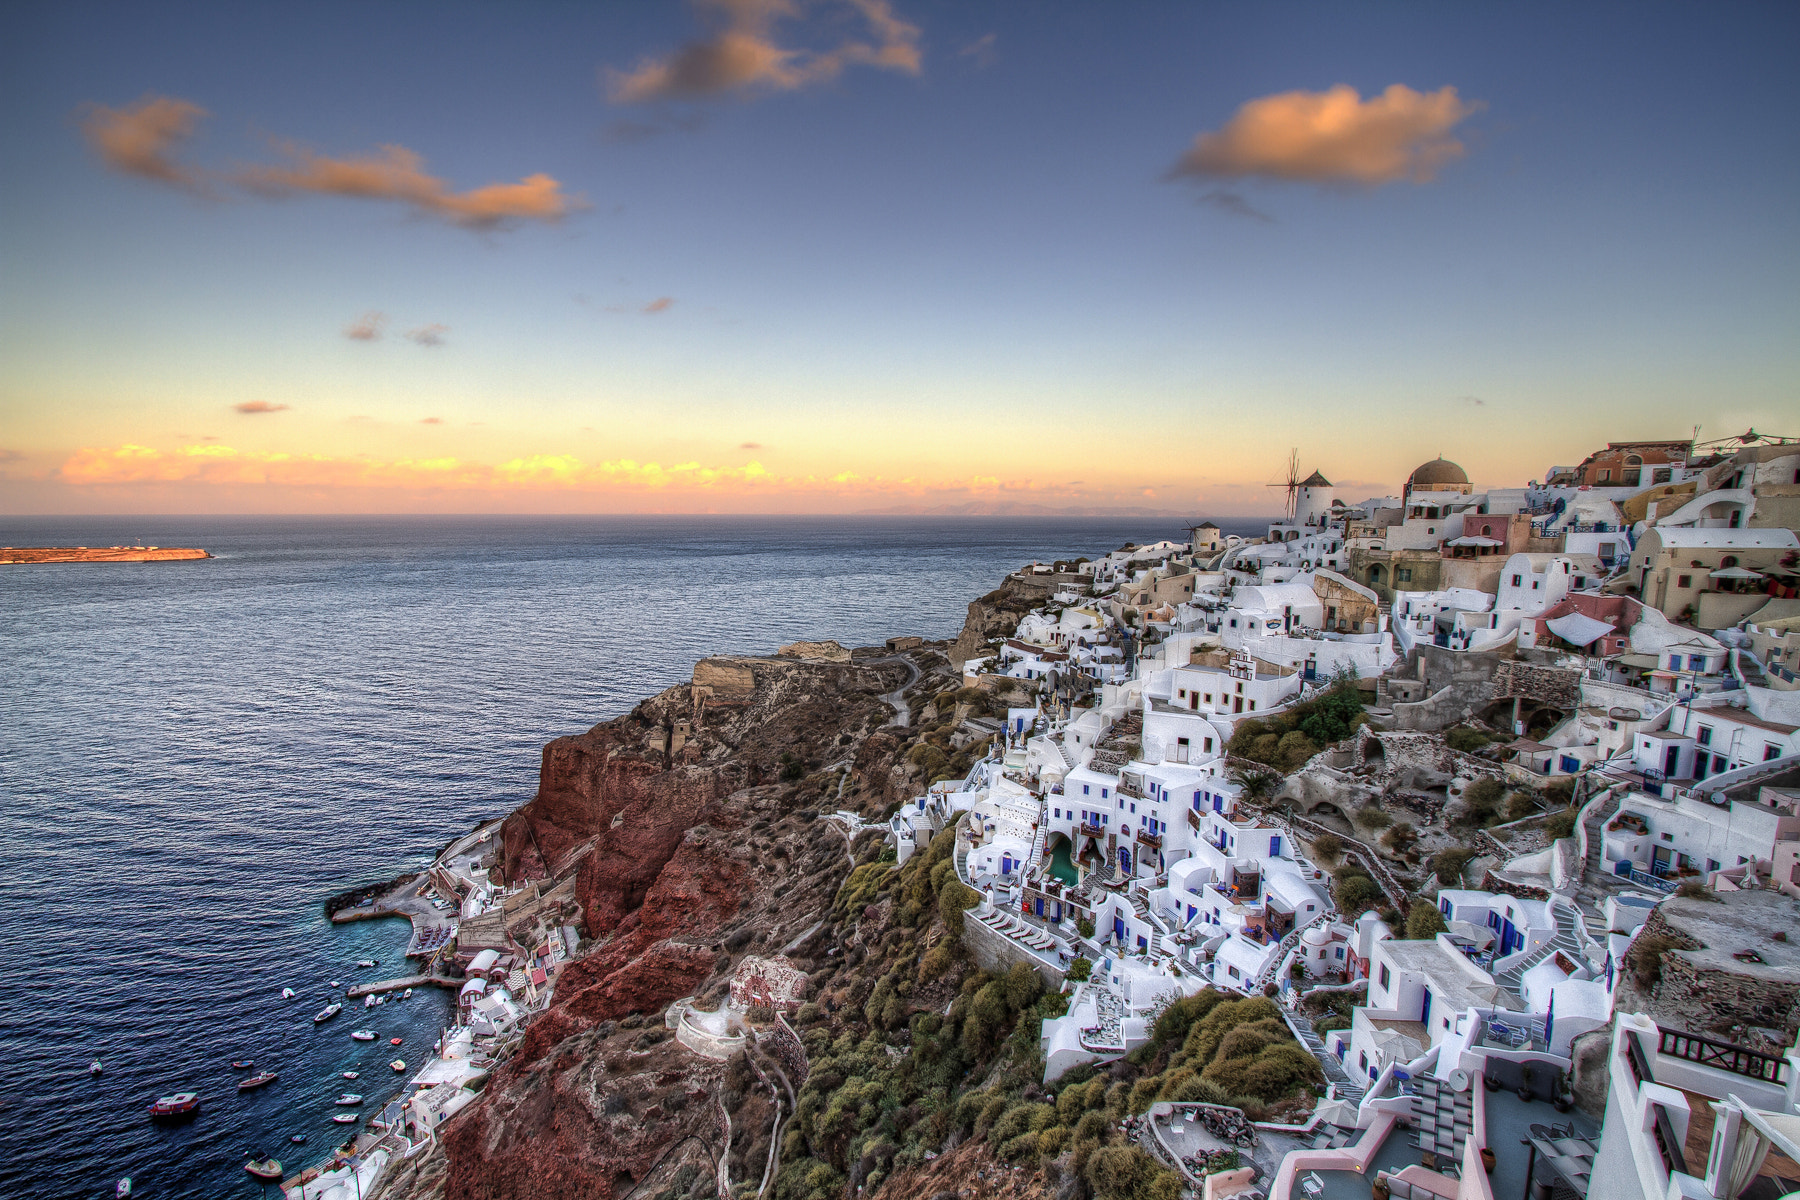 Photograph Good morning, Oia by Nikola Totuhov on 500px